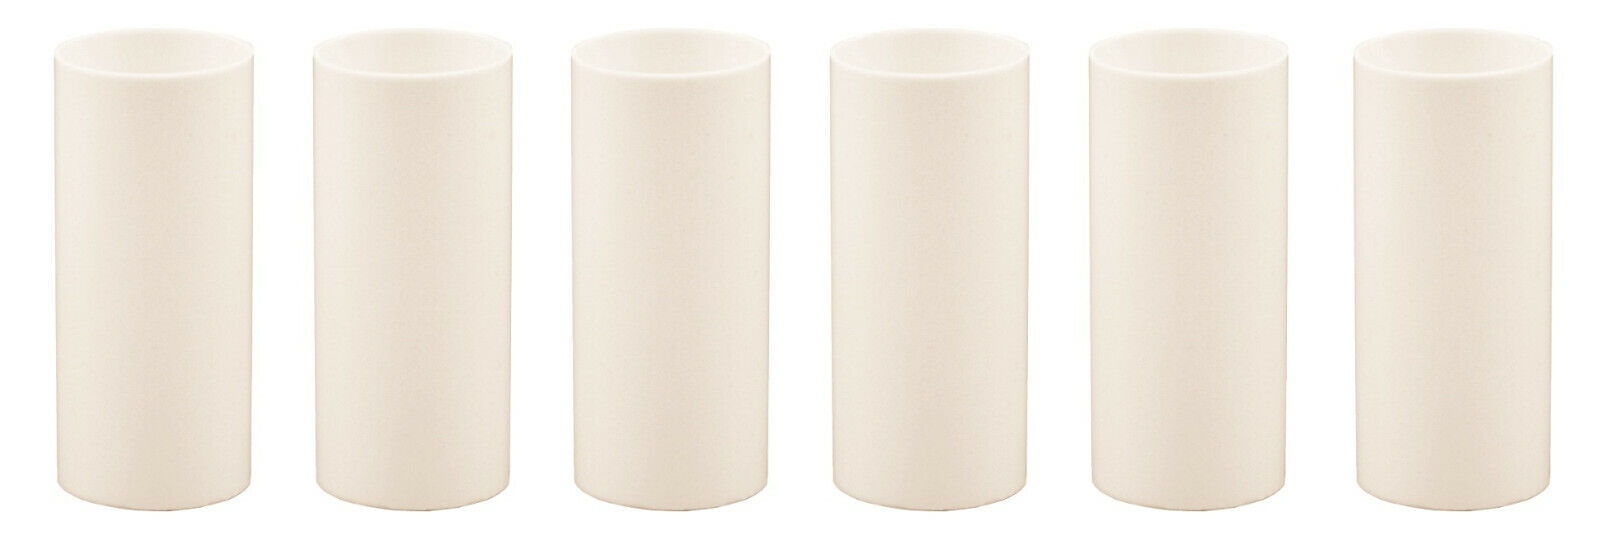 2 Inch Cream Plastic Candle Cover For Candelabra Base Lamp Sockets, 6 Pieces Collectibles